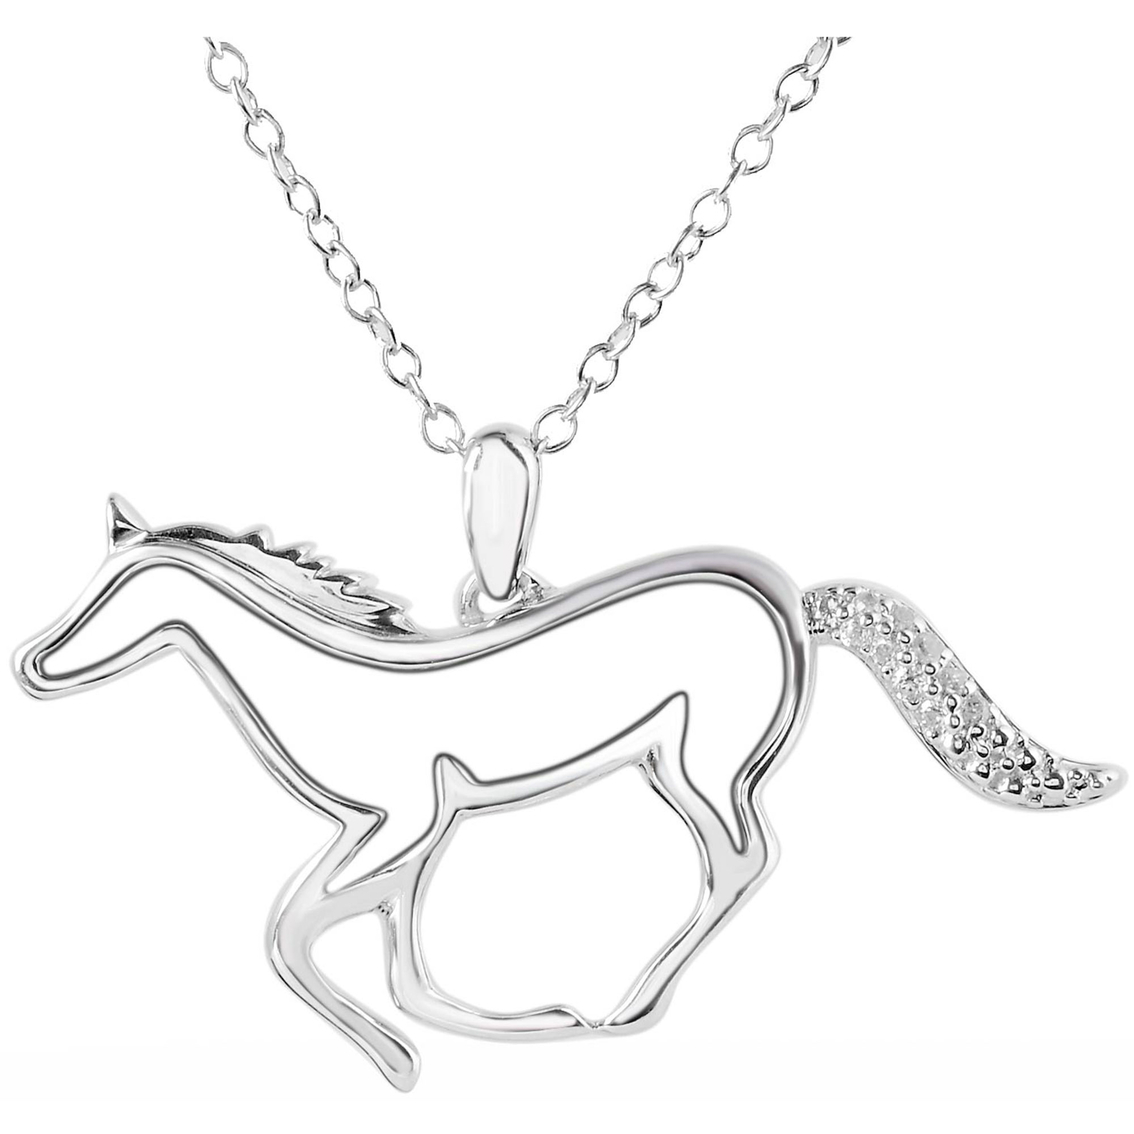 Aspca sterling silver horse pendant with diamond accents diamond 6430 aloadofball Image collections